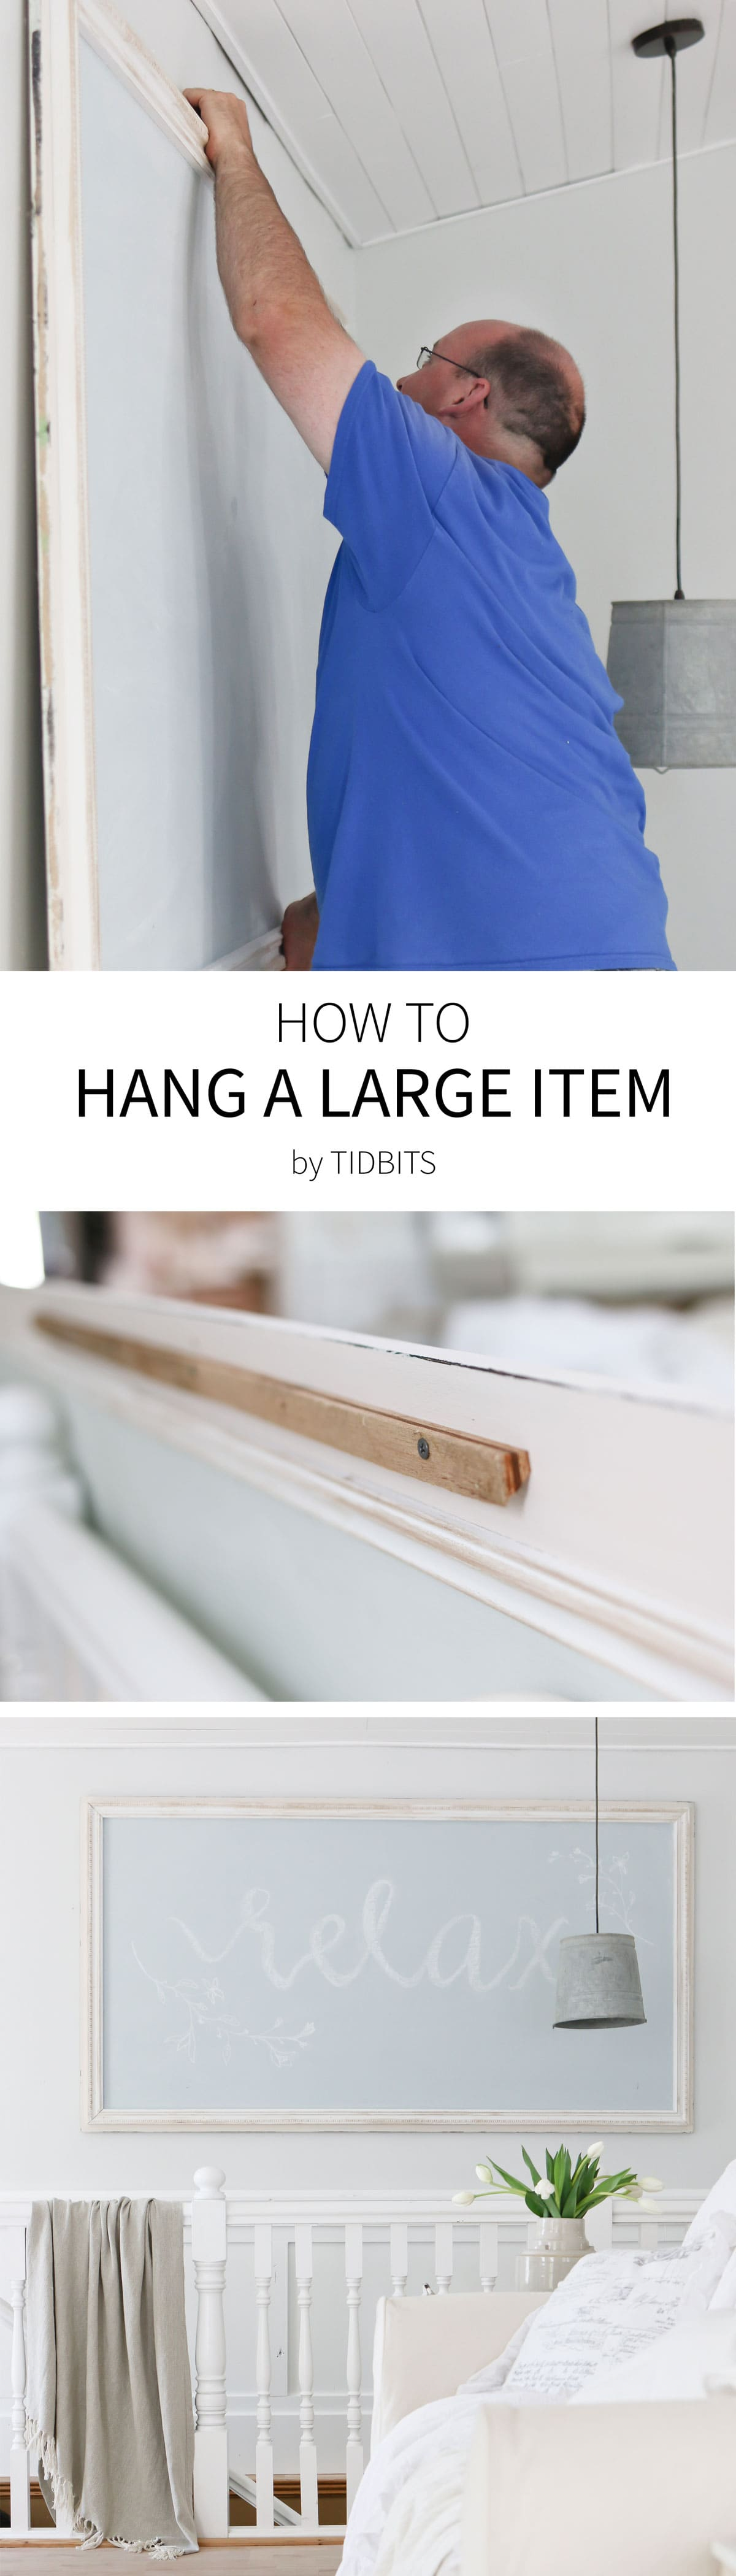 How to hang a large item on the wall.